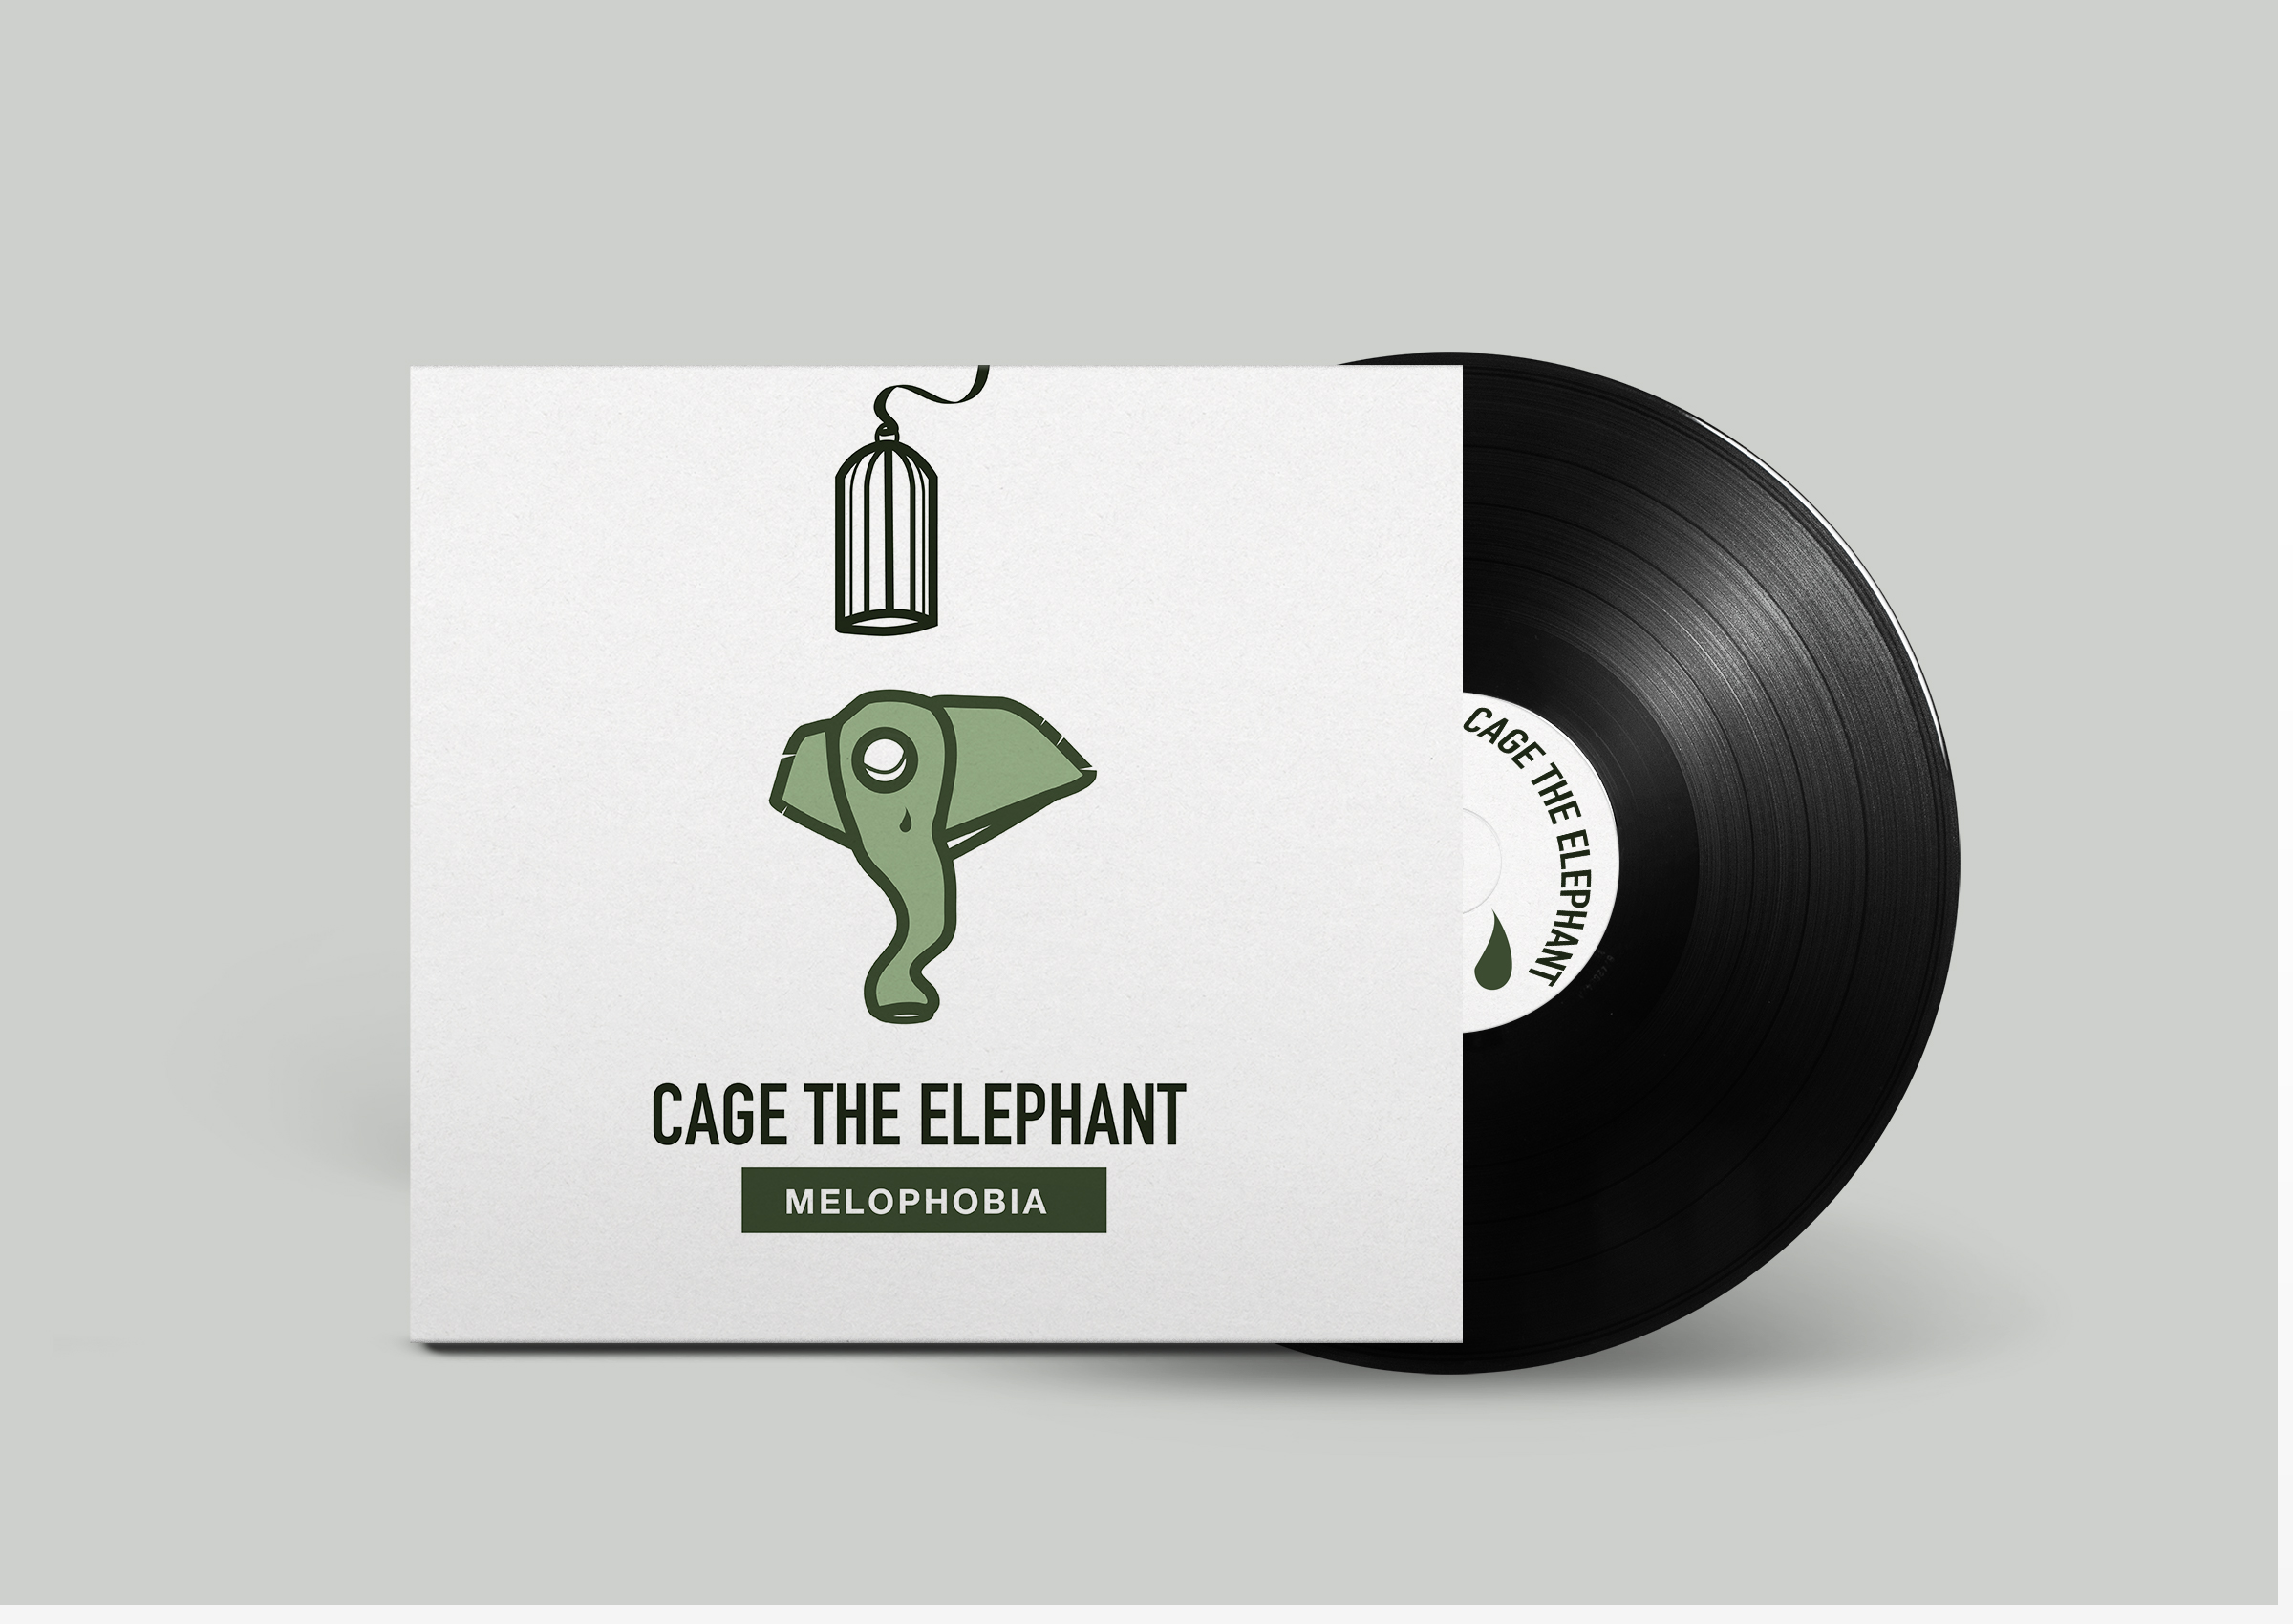 Cage the Elephant Mock up